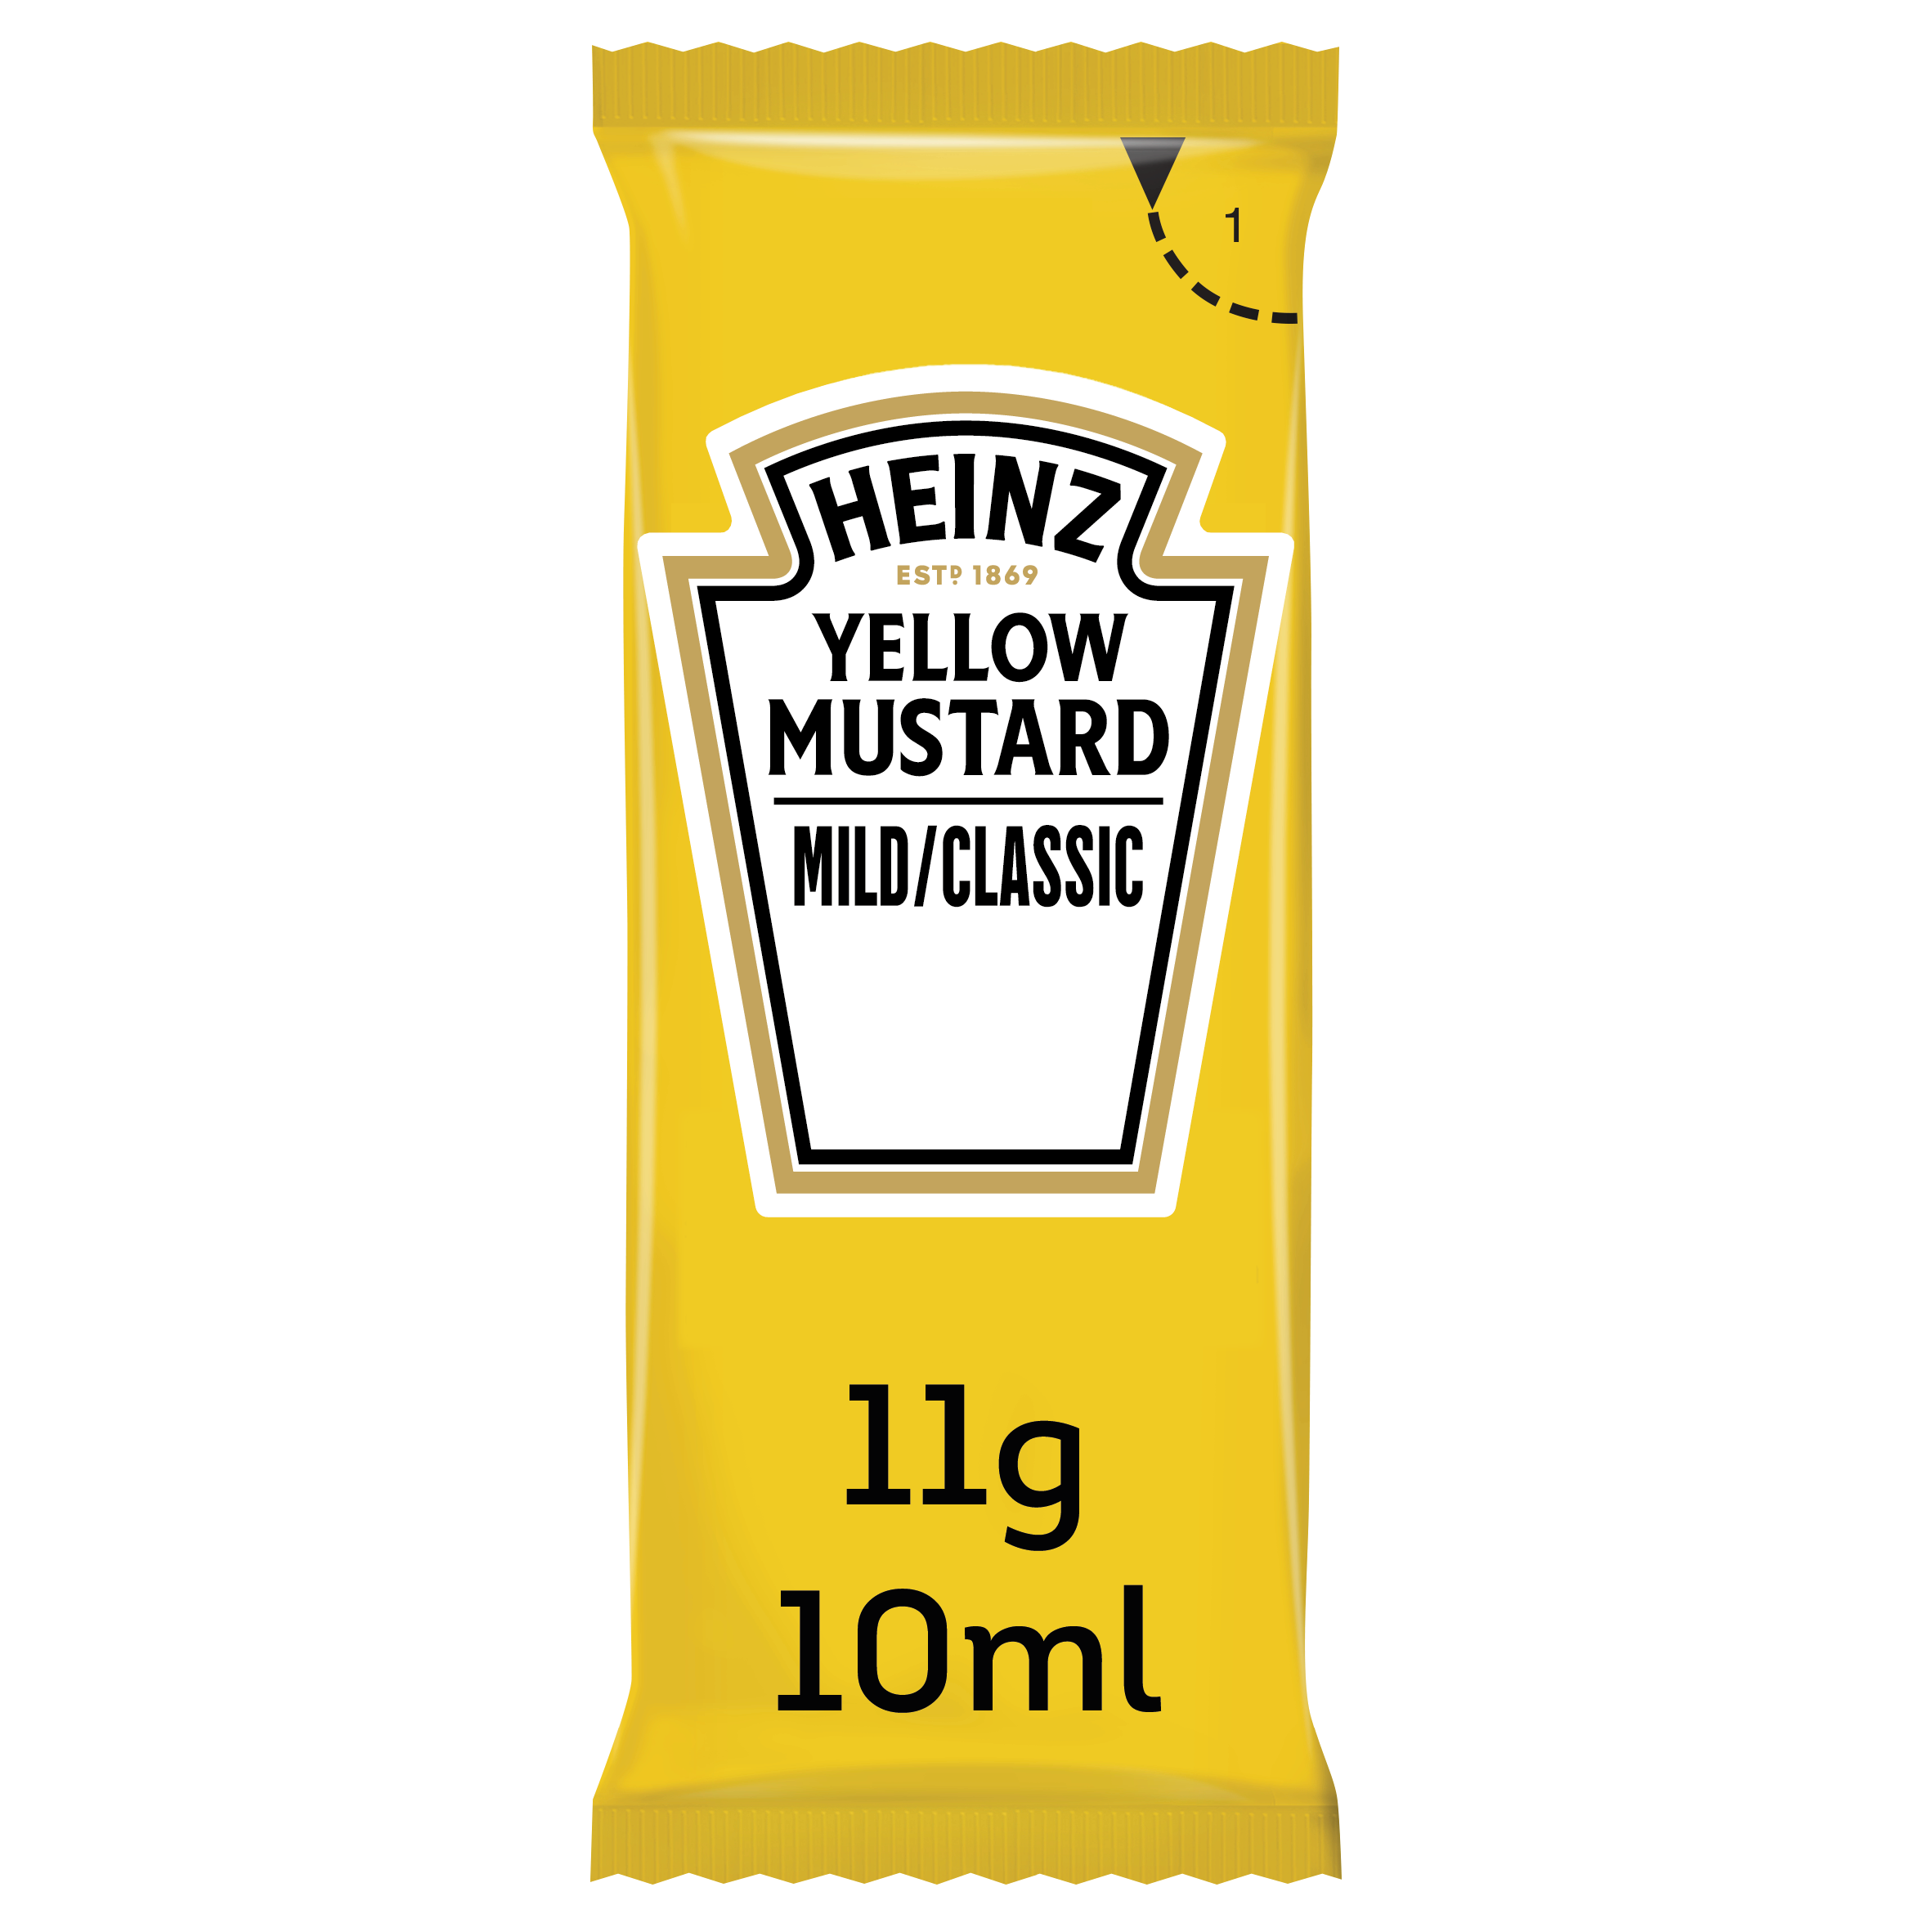 Heinz Yellow mustard 10ml